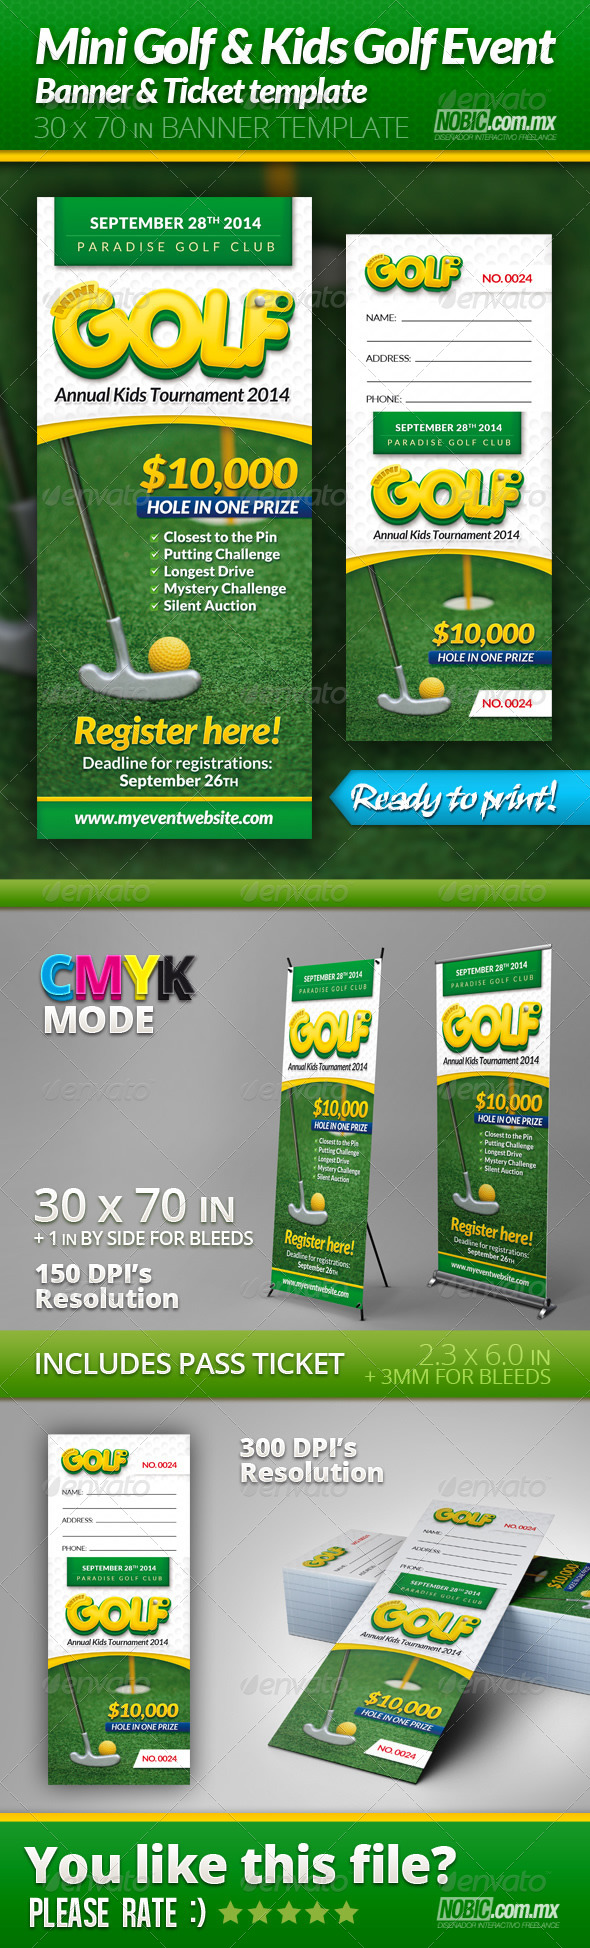 GraphicRiver Mini Golf and Kids Golf Event Banner and Ticket 6970836